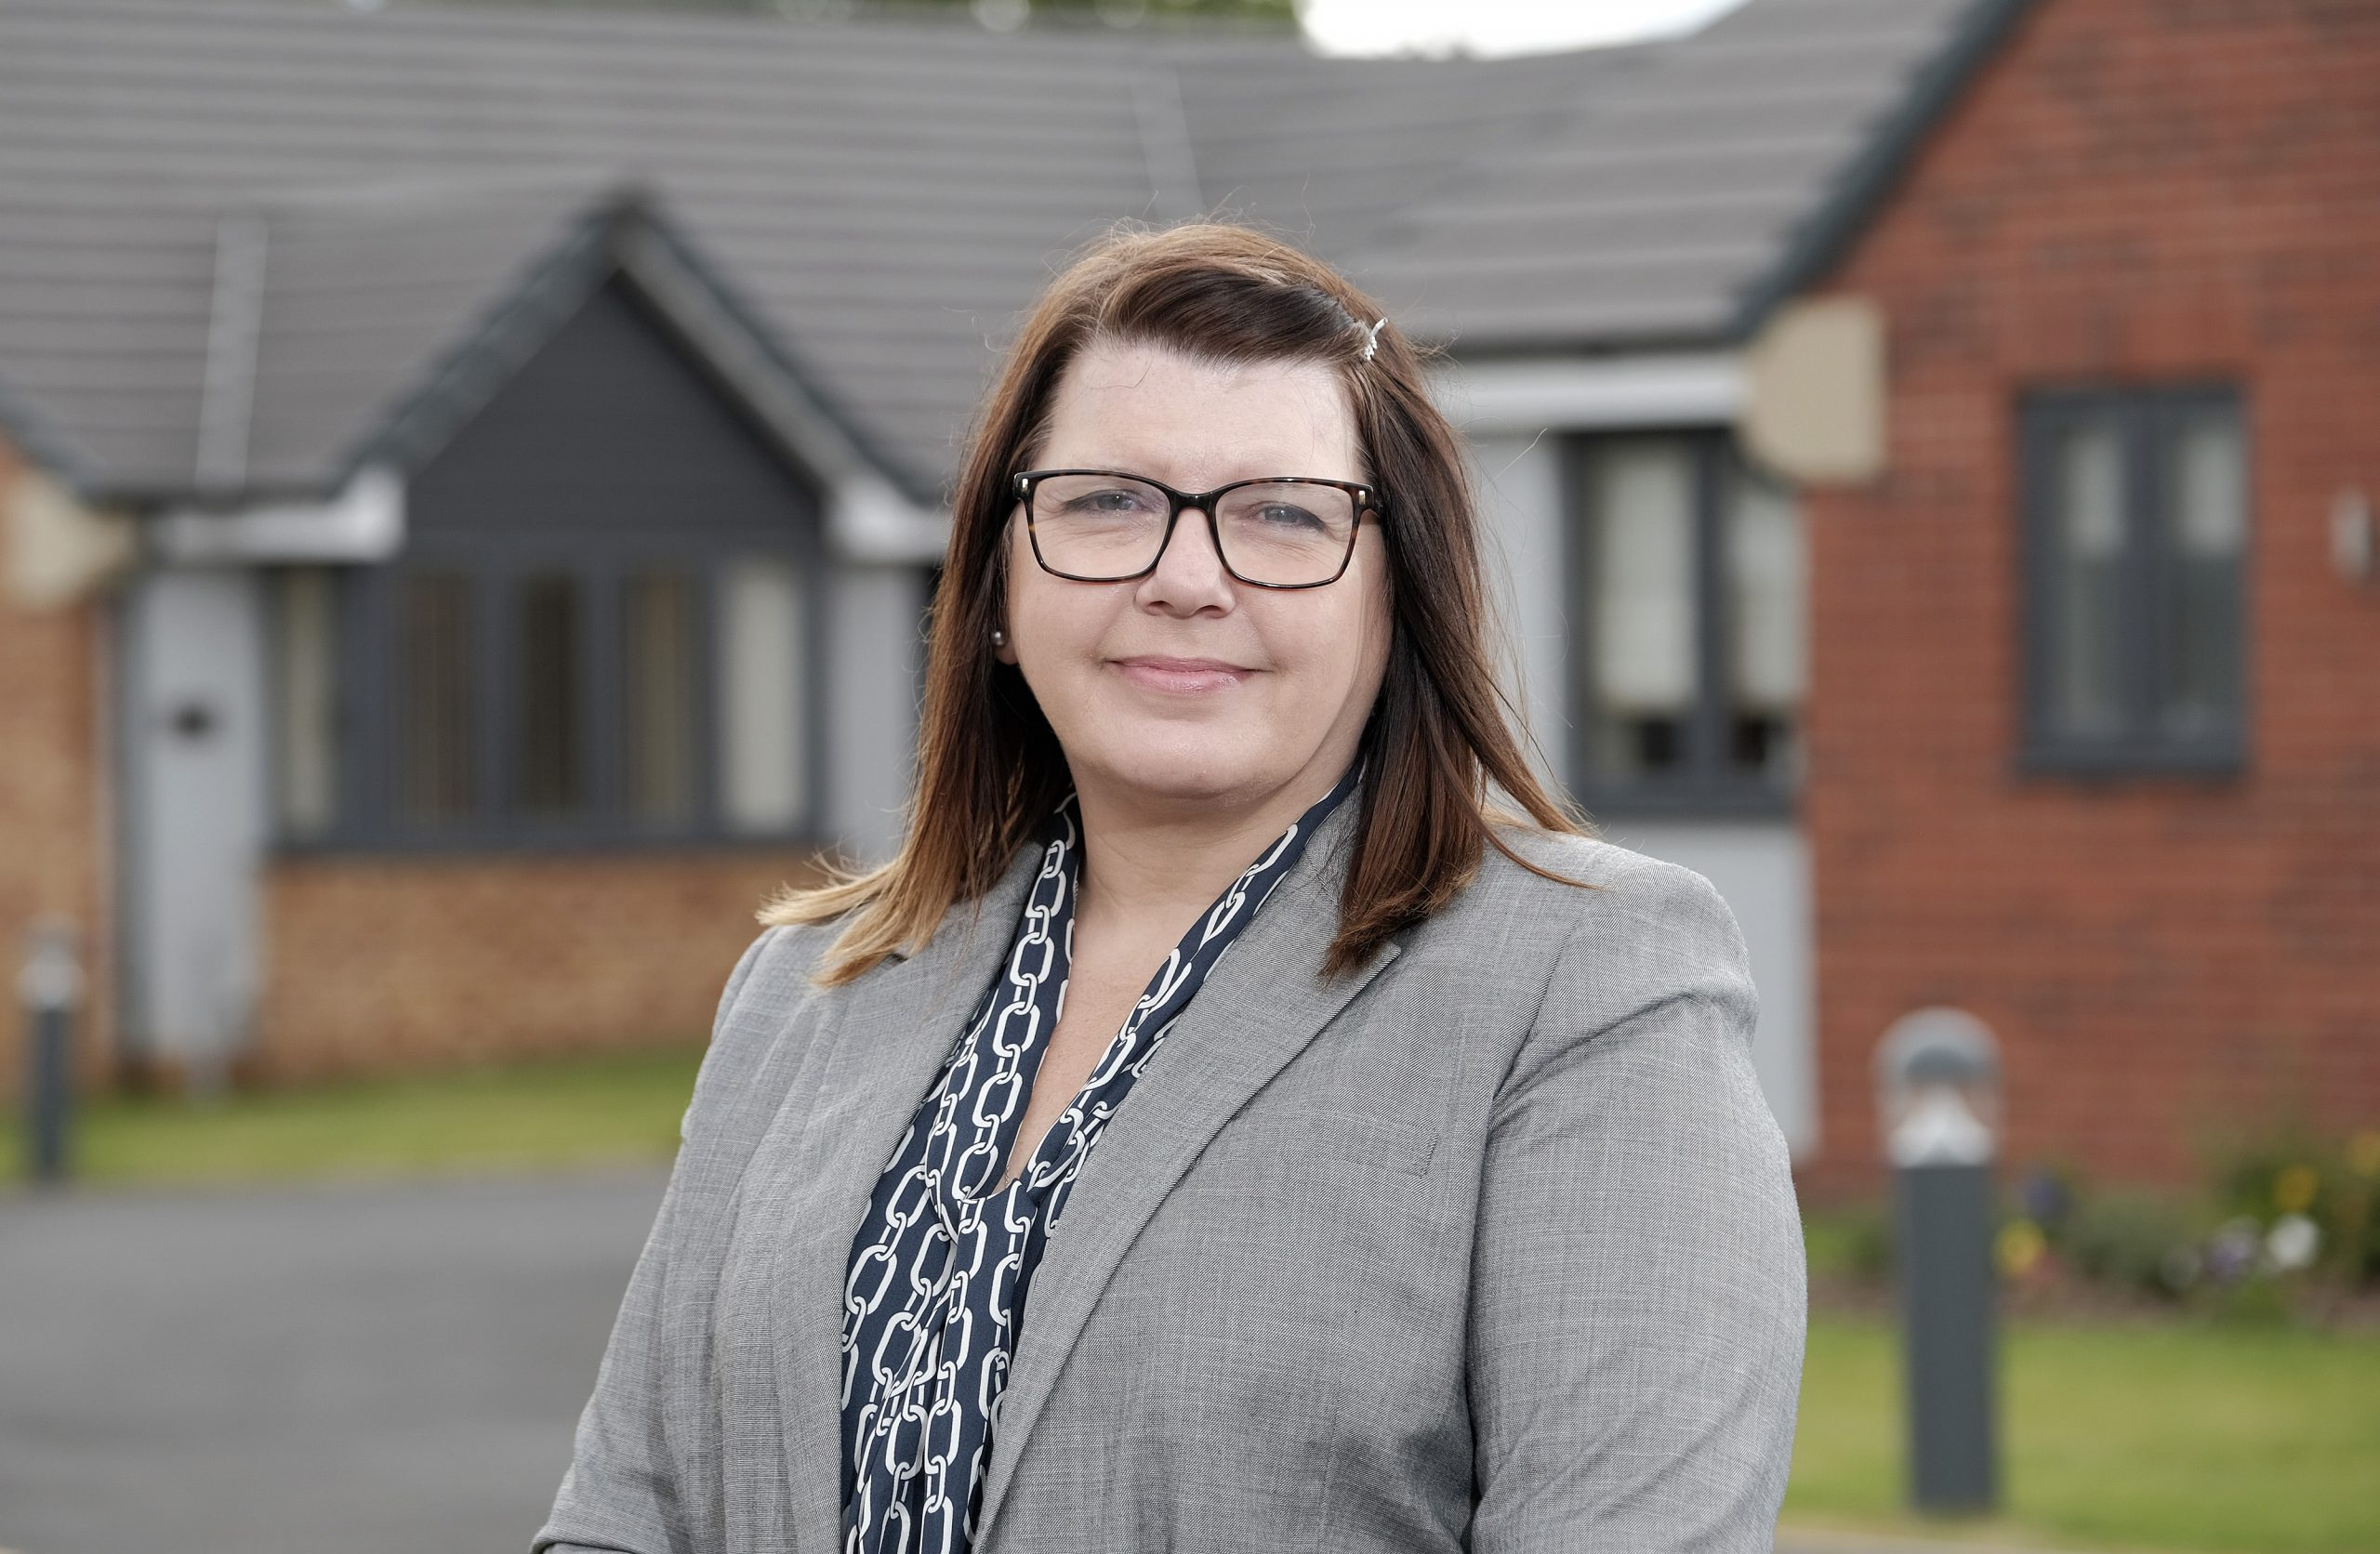 Midlands Housebuilder Builds Marketing Team